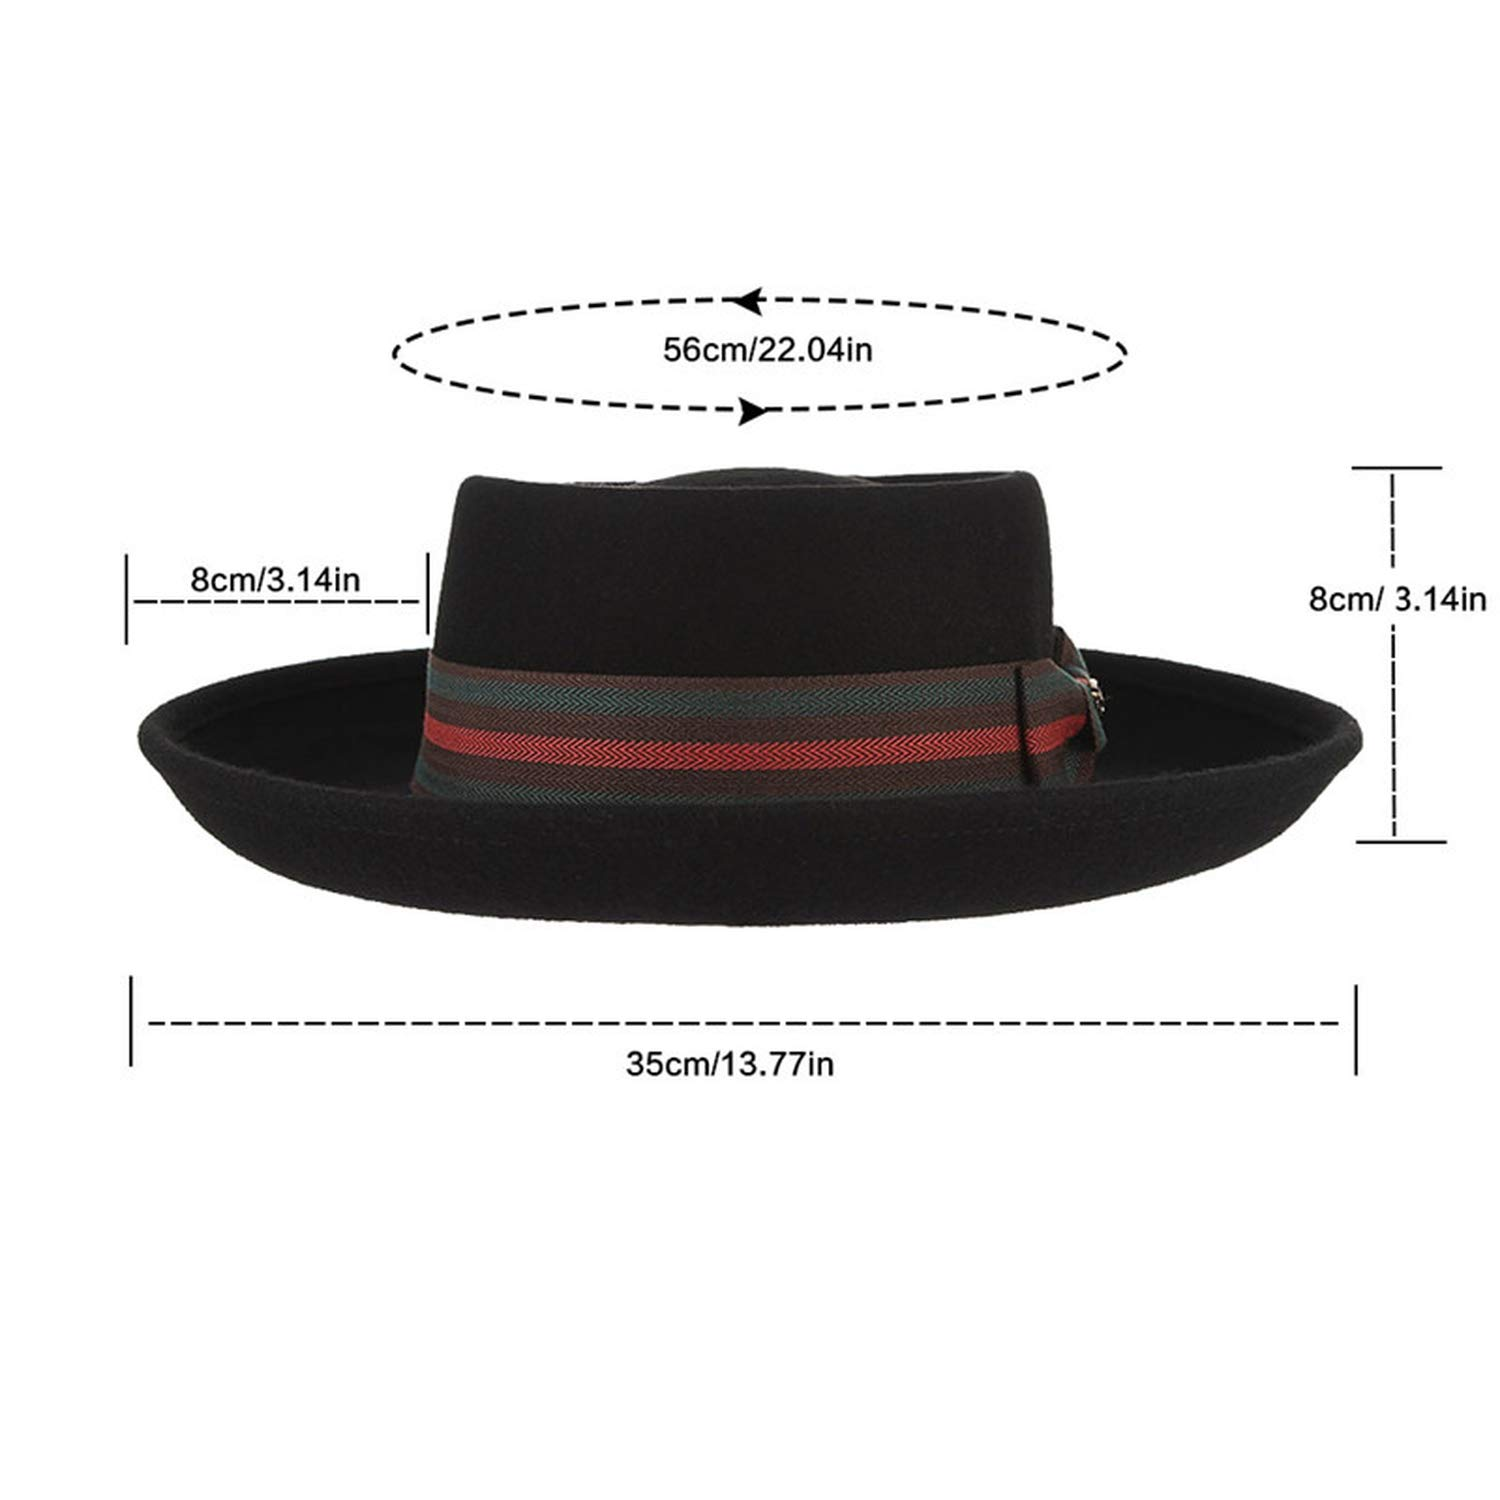 Fedora Hats 100/% Wool High-Grade Felt Hat for Men Women Vintage Unisex Classical Flat-top Wide Brim Jazz Cap